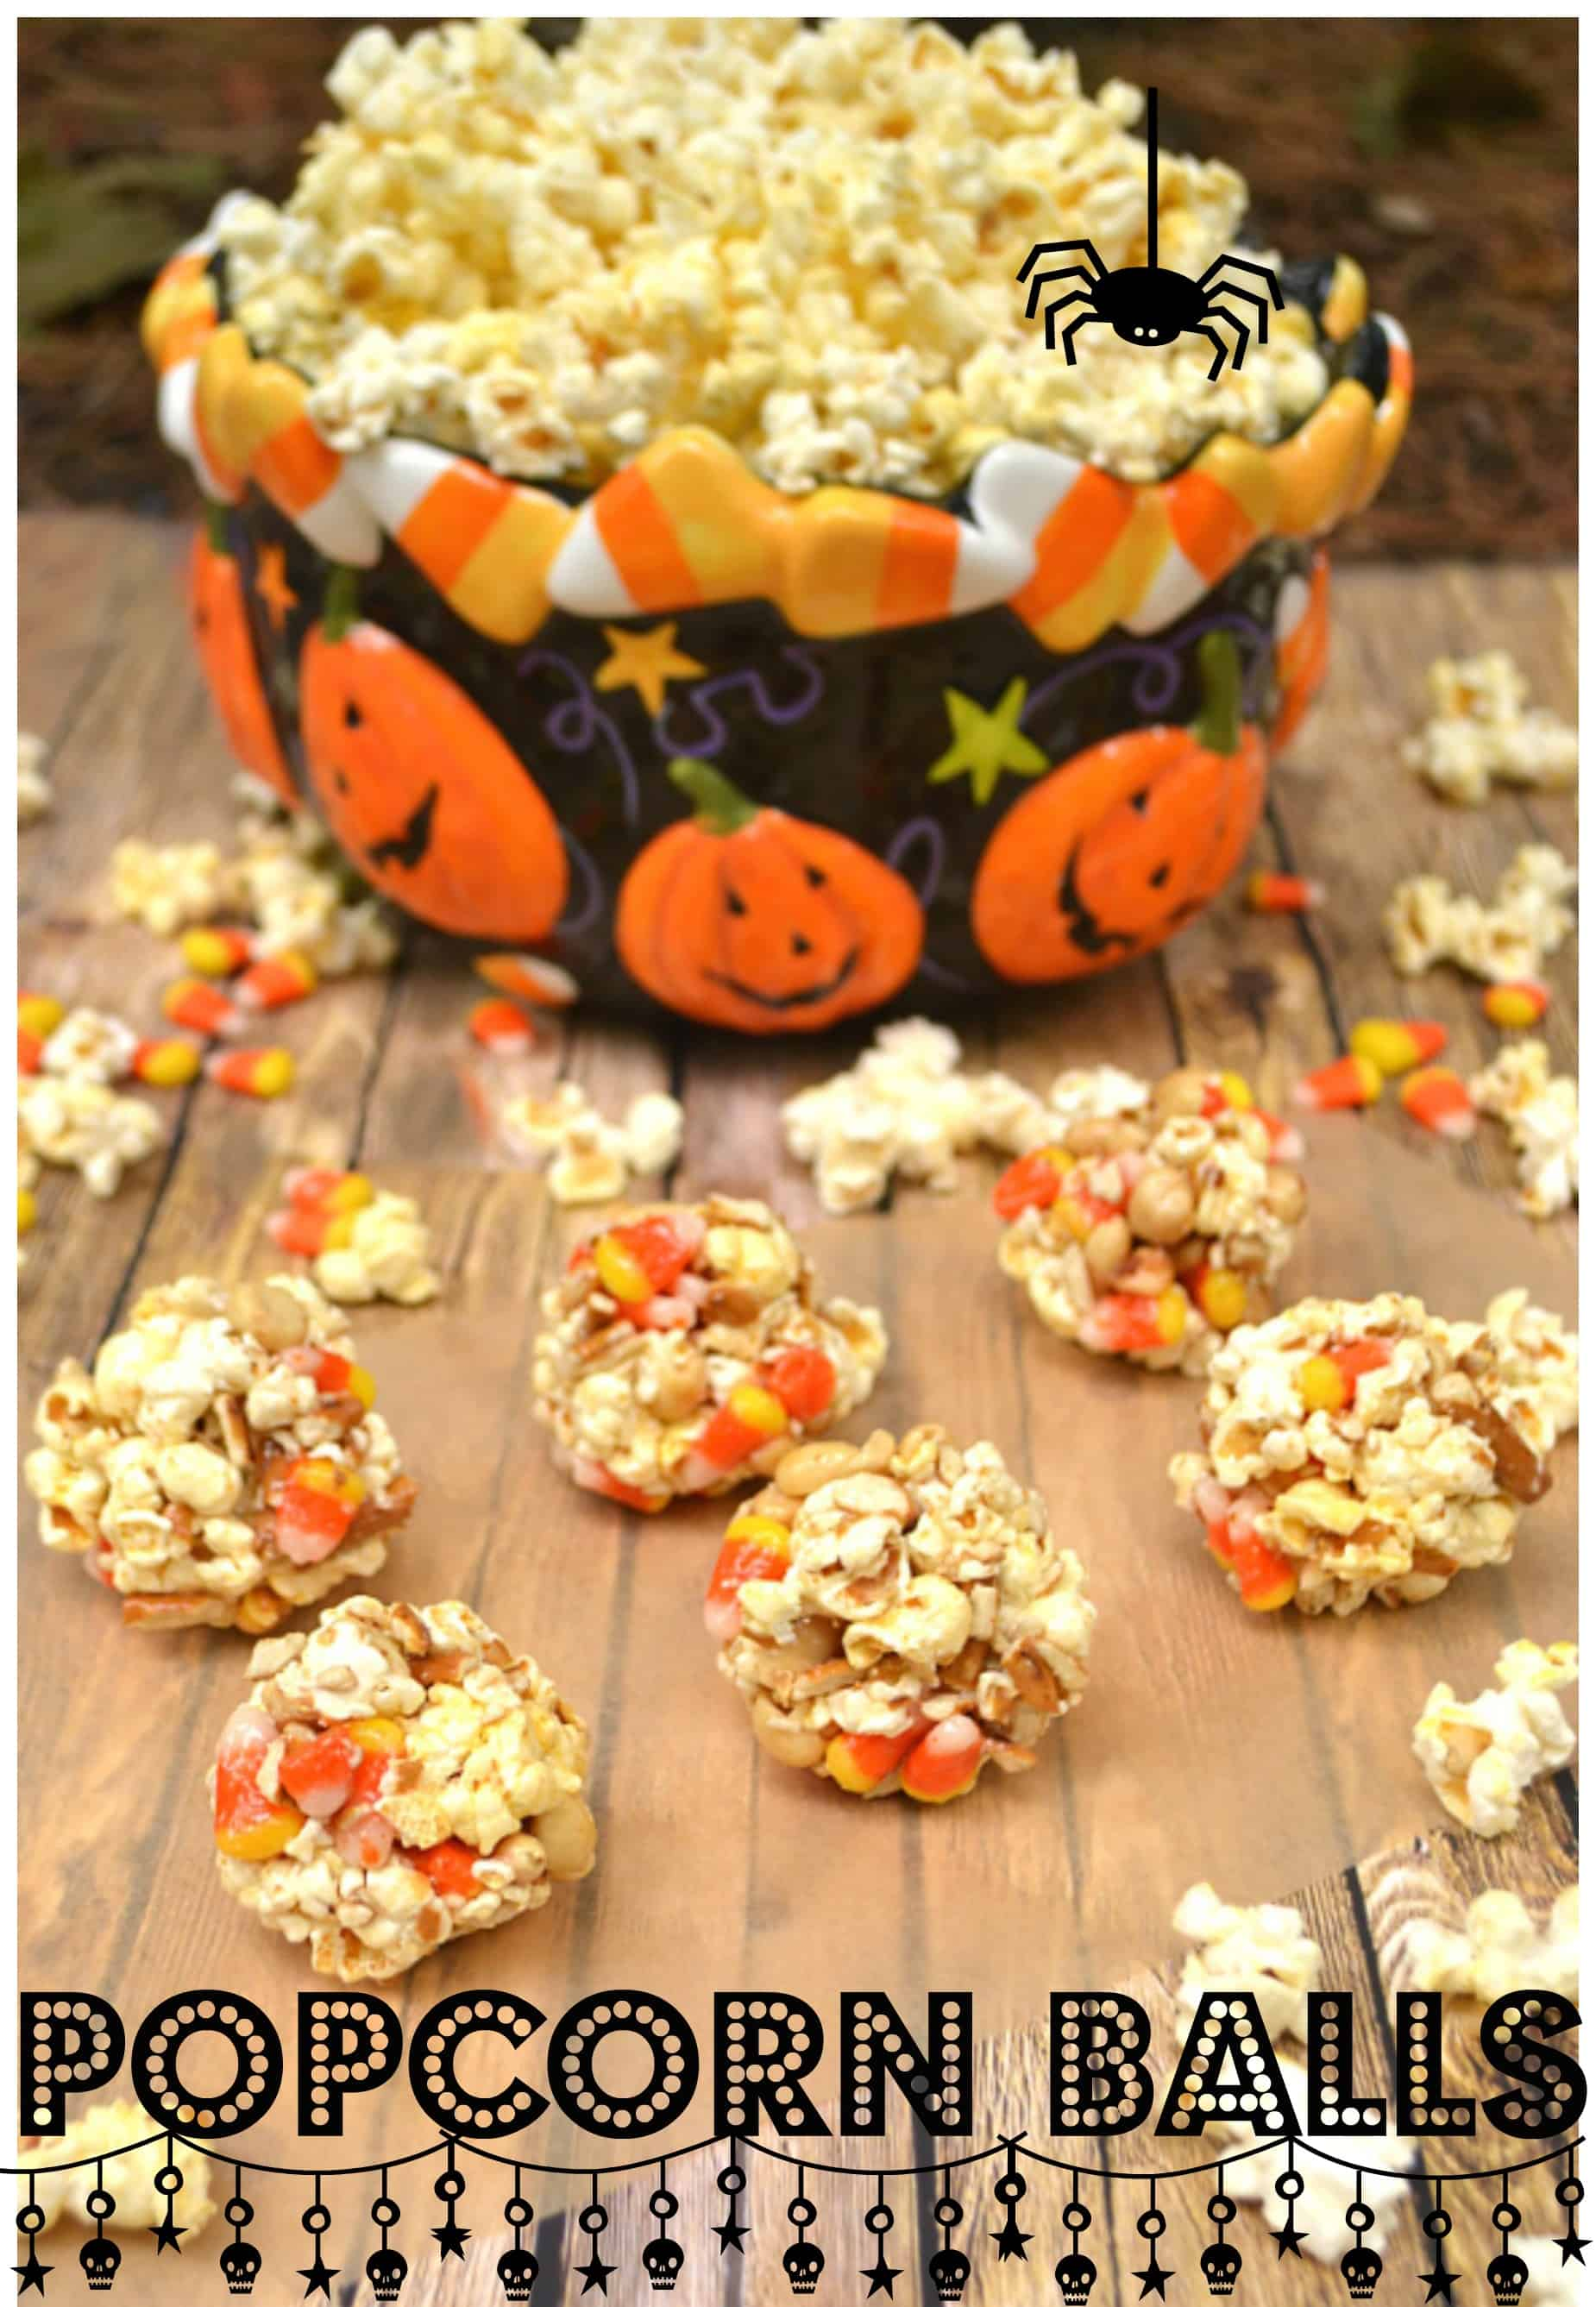 Bringing back an old favorite - Popcorn Balls | Made with Marshmallow, Candy Corn, Pretzels & Peanuts | Kids & Adults Love this Halloween Treat | craftycookingmama.com